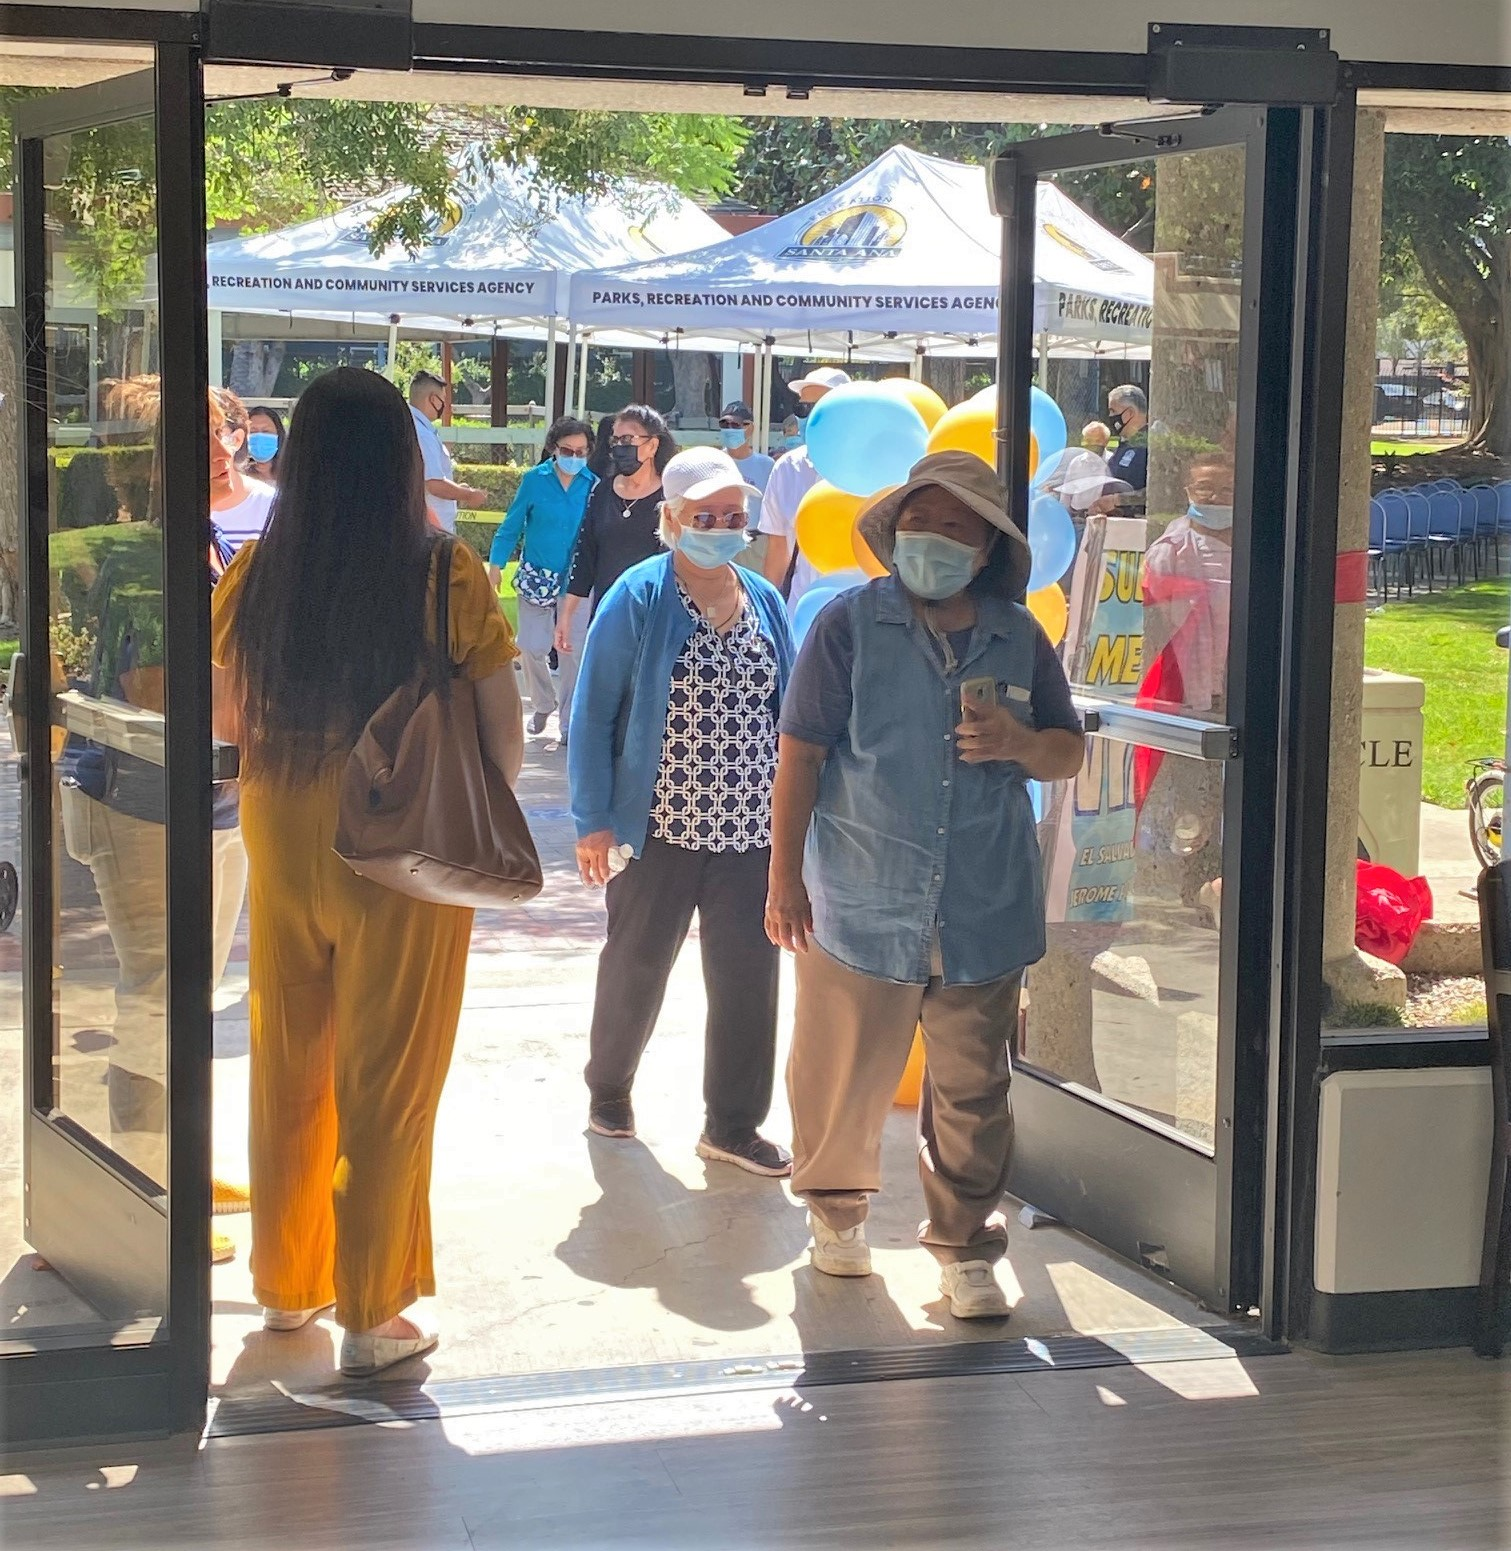 An image of two elderly ladies walking into the Santa Ana senior center. The one in front has smiling eyes, and both ladies are wearing masks.